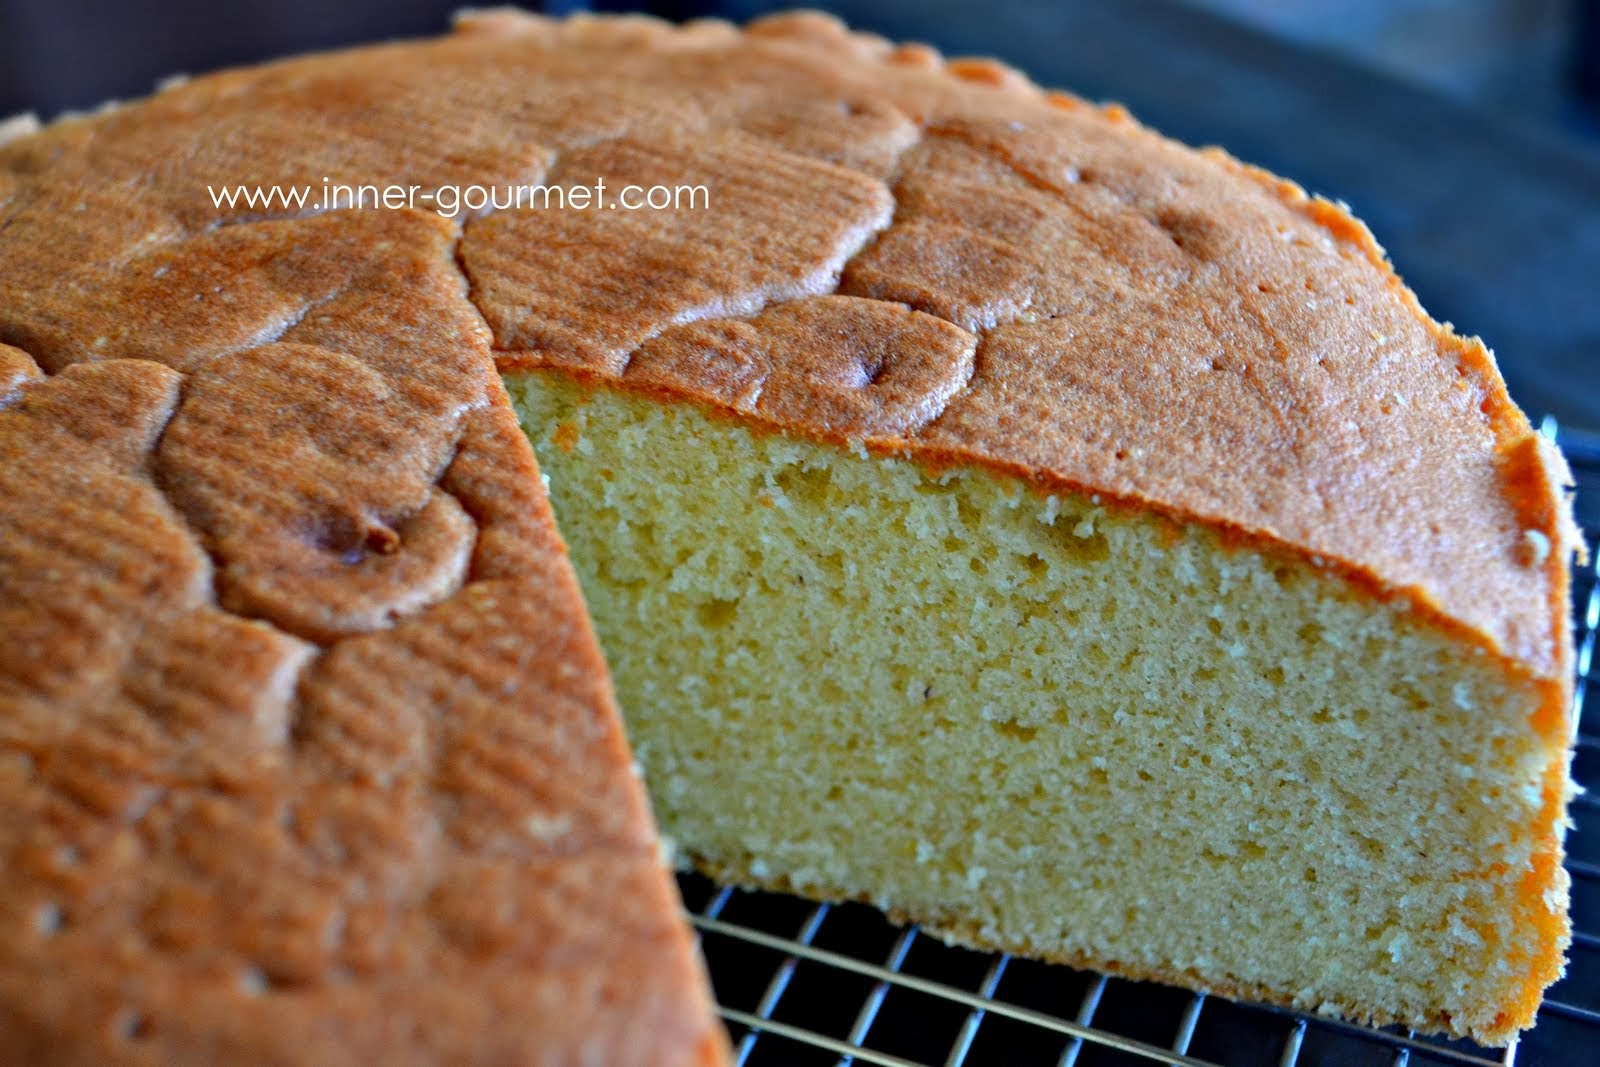 Light Lemon Sponge Cake Recipes: A Light And Fluffy Sponge Cake